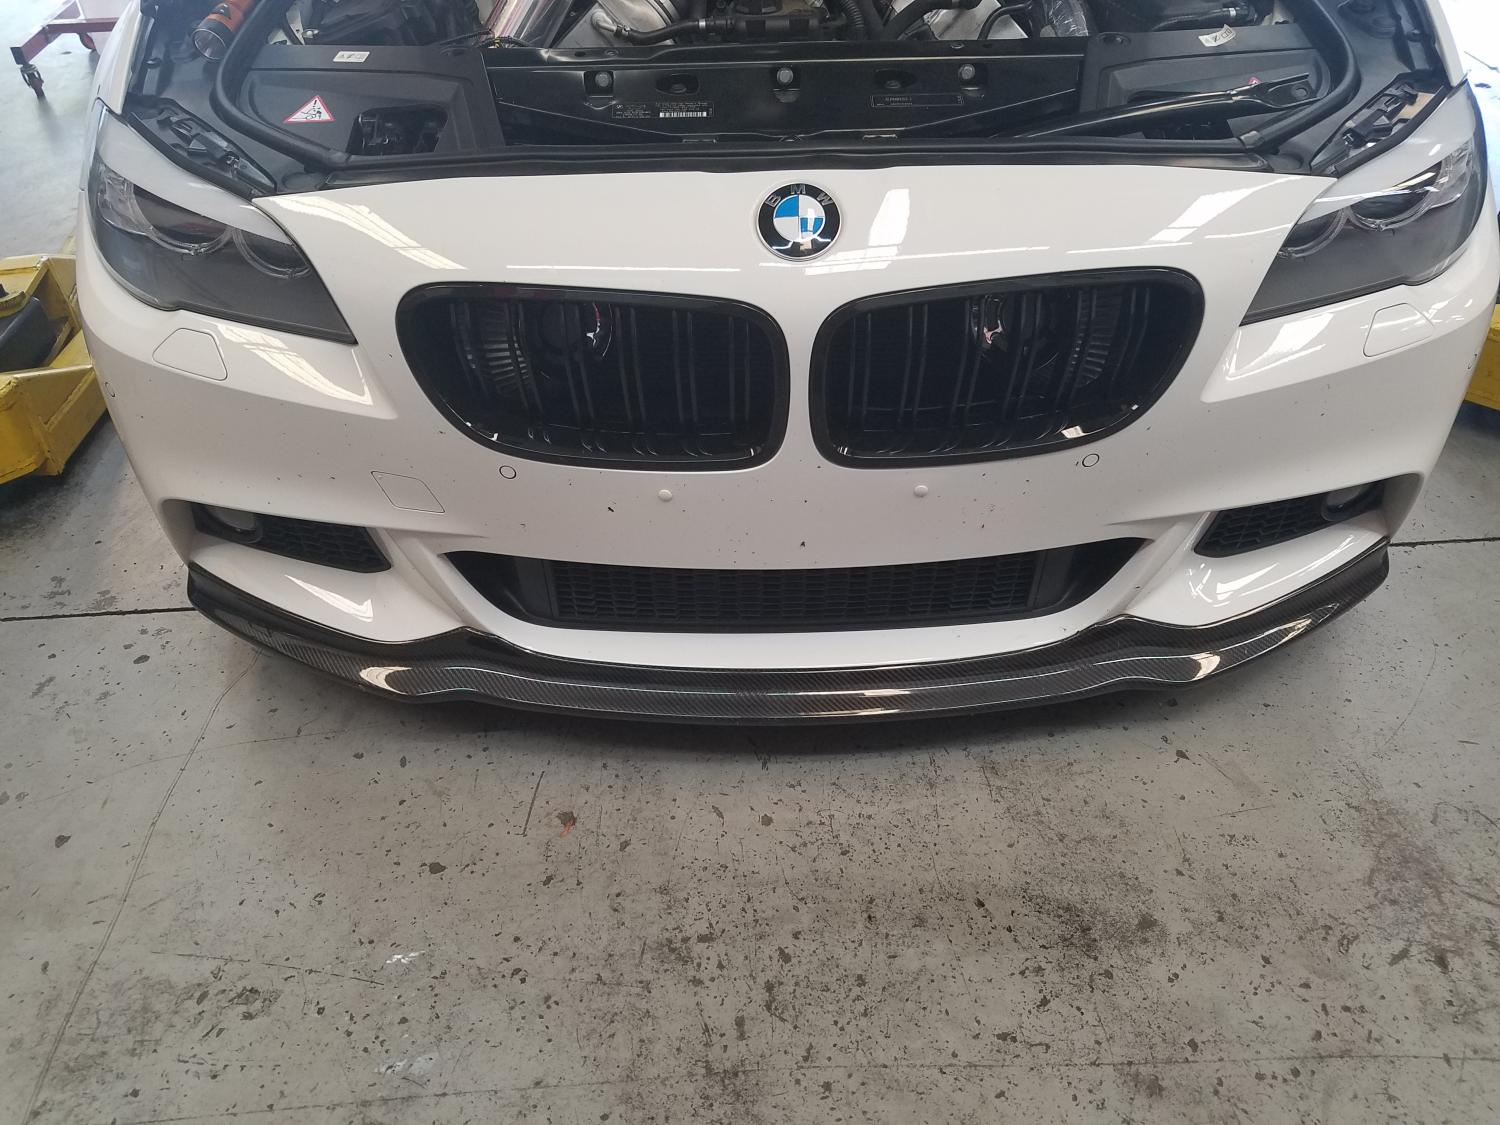 550i in for service